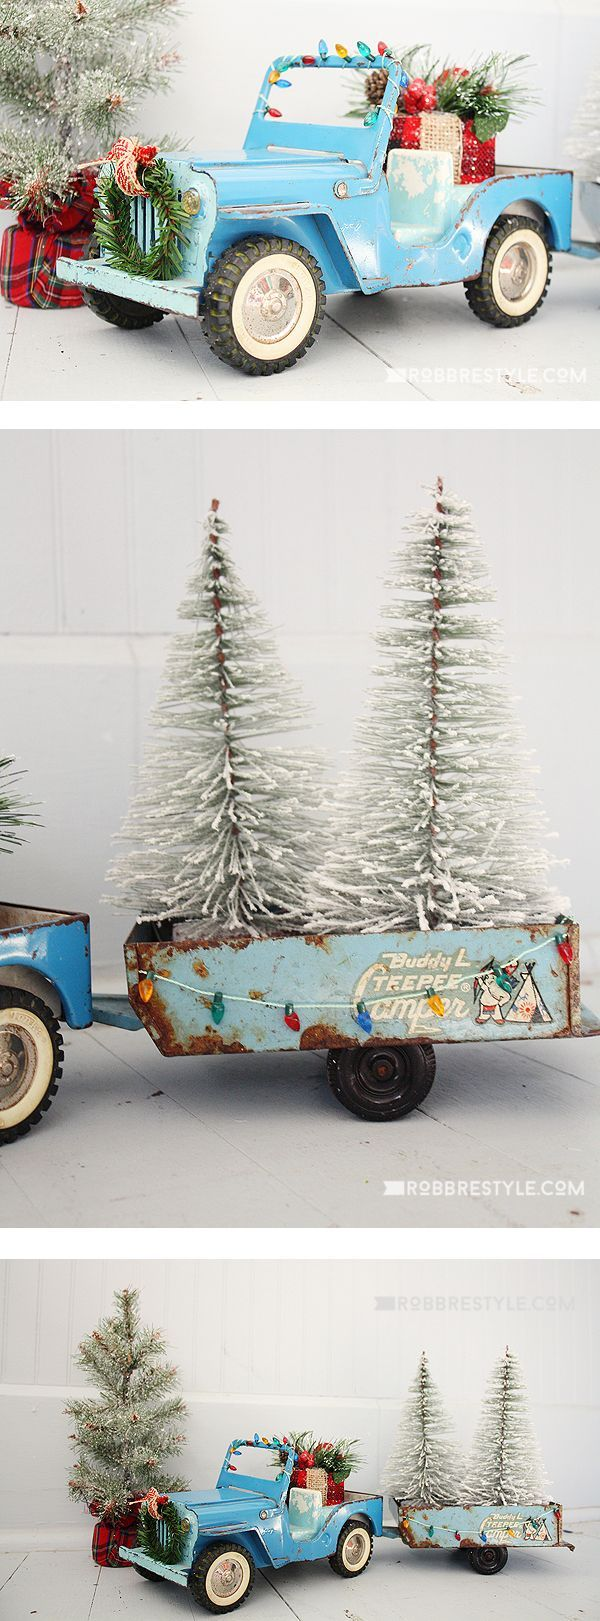 For Christmas Best 25 Decorating For Christmas Ideas On Pinterest Farmhouse